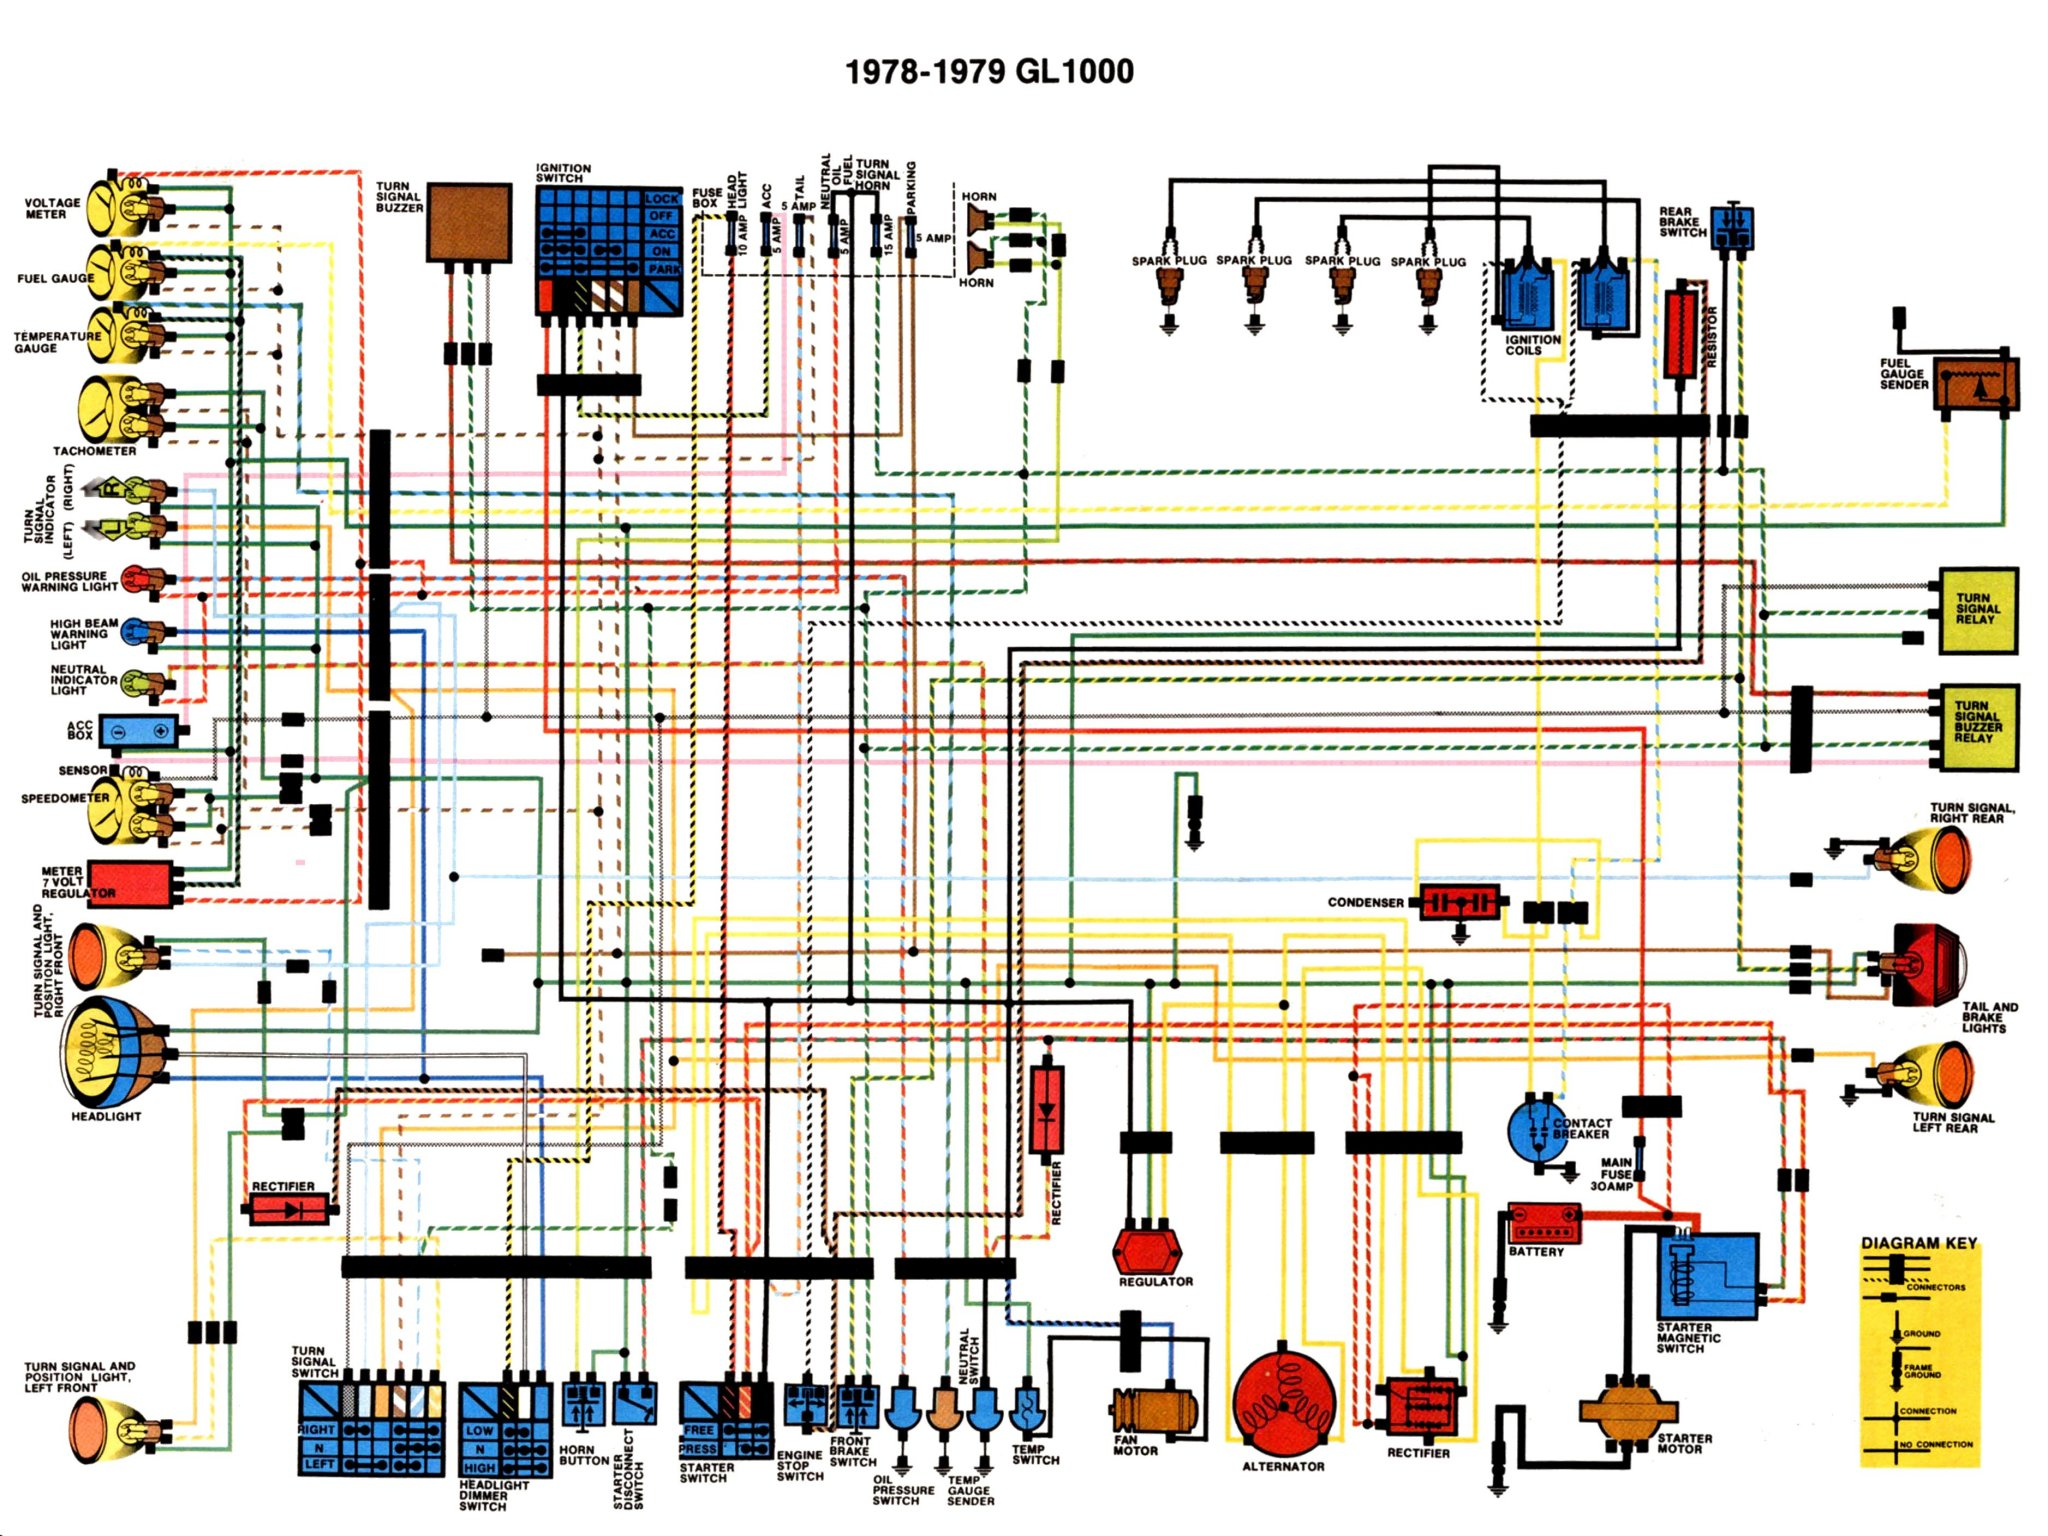 WRG-1635] 1987 1100 Virago Wiring Diagram Free Download